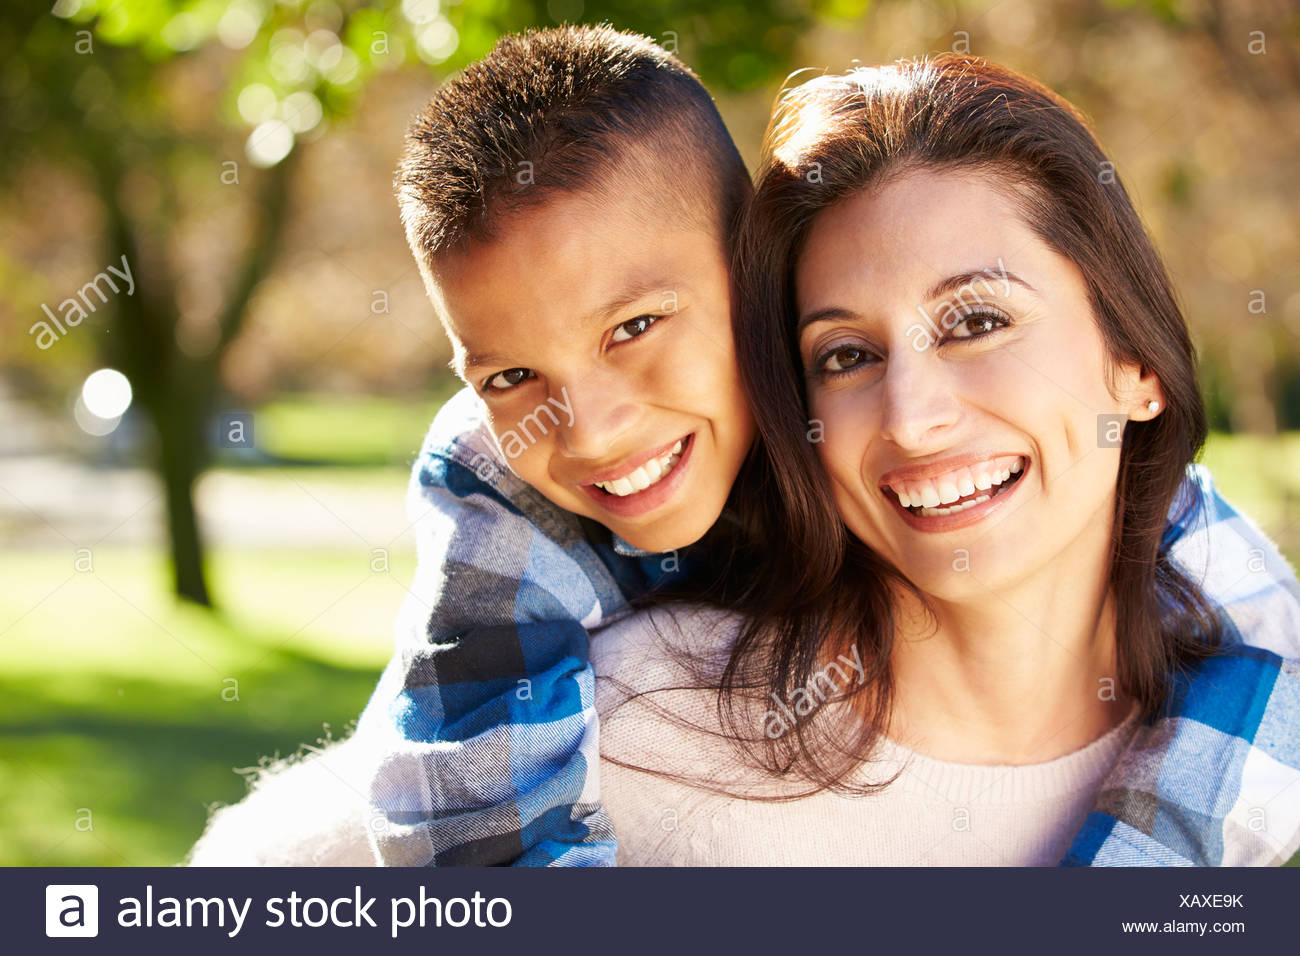 Portrait Of Mother And Son In Countryside - Stock Image